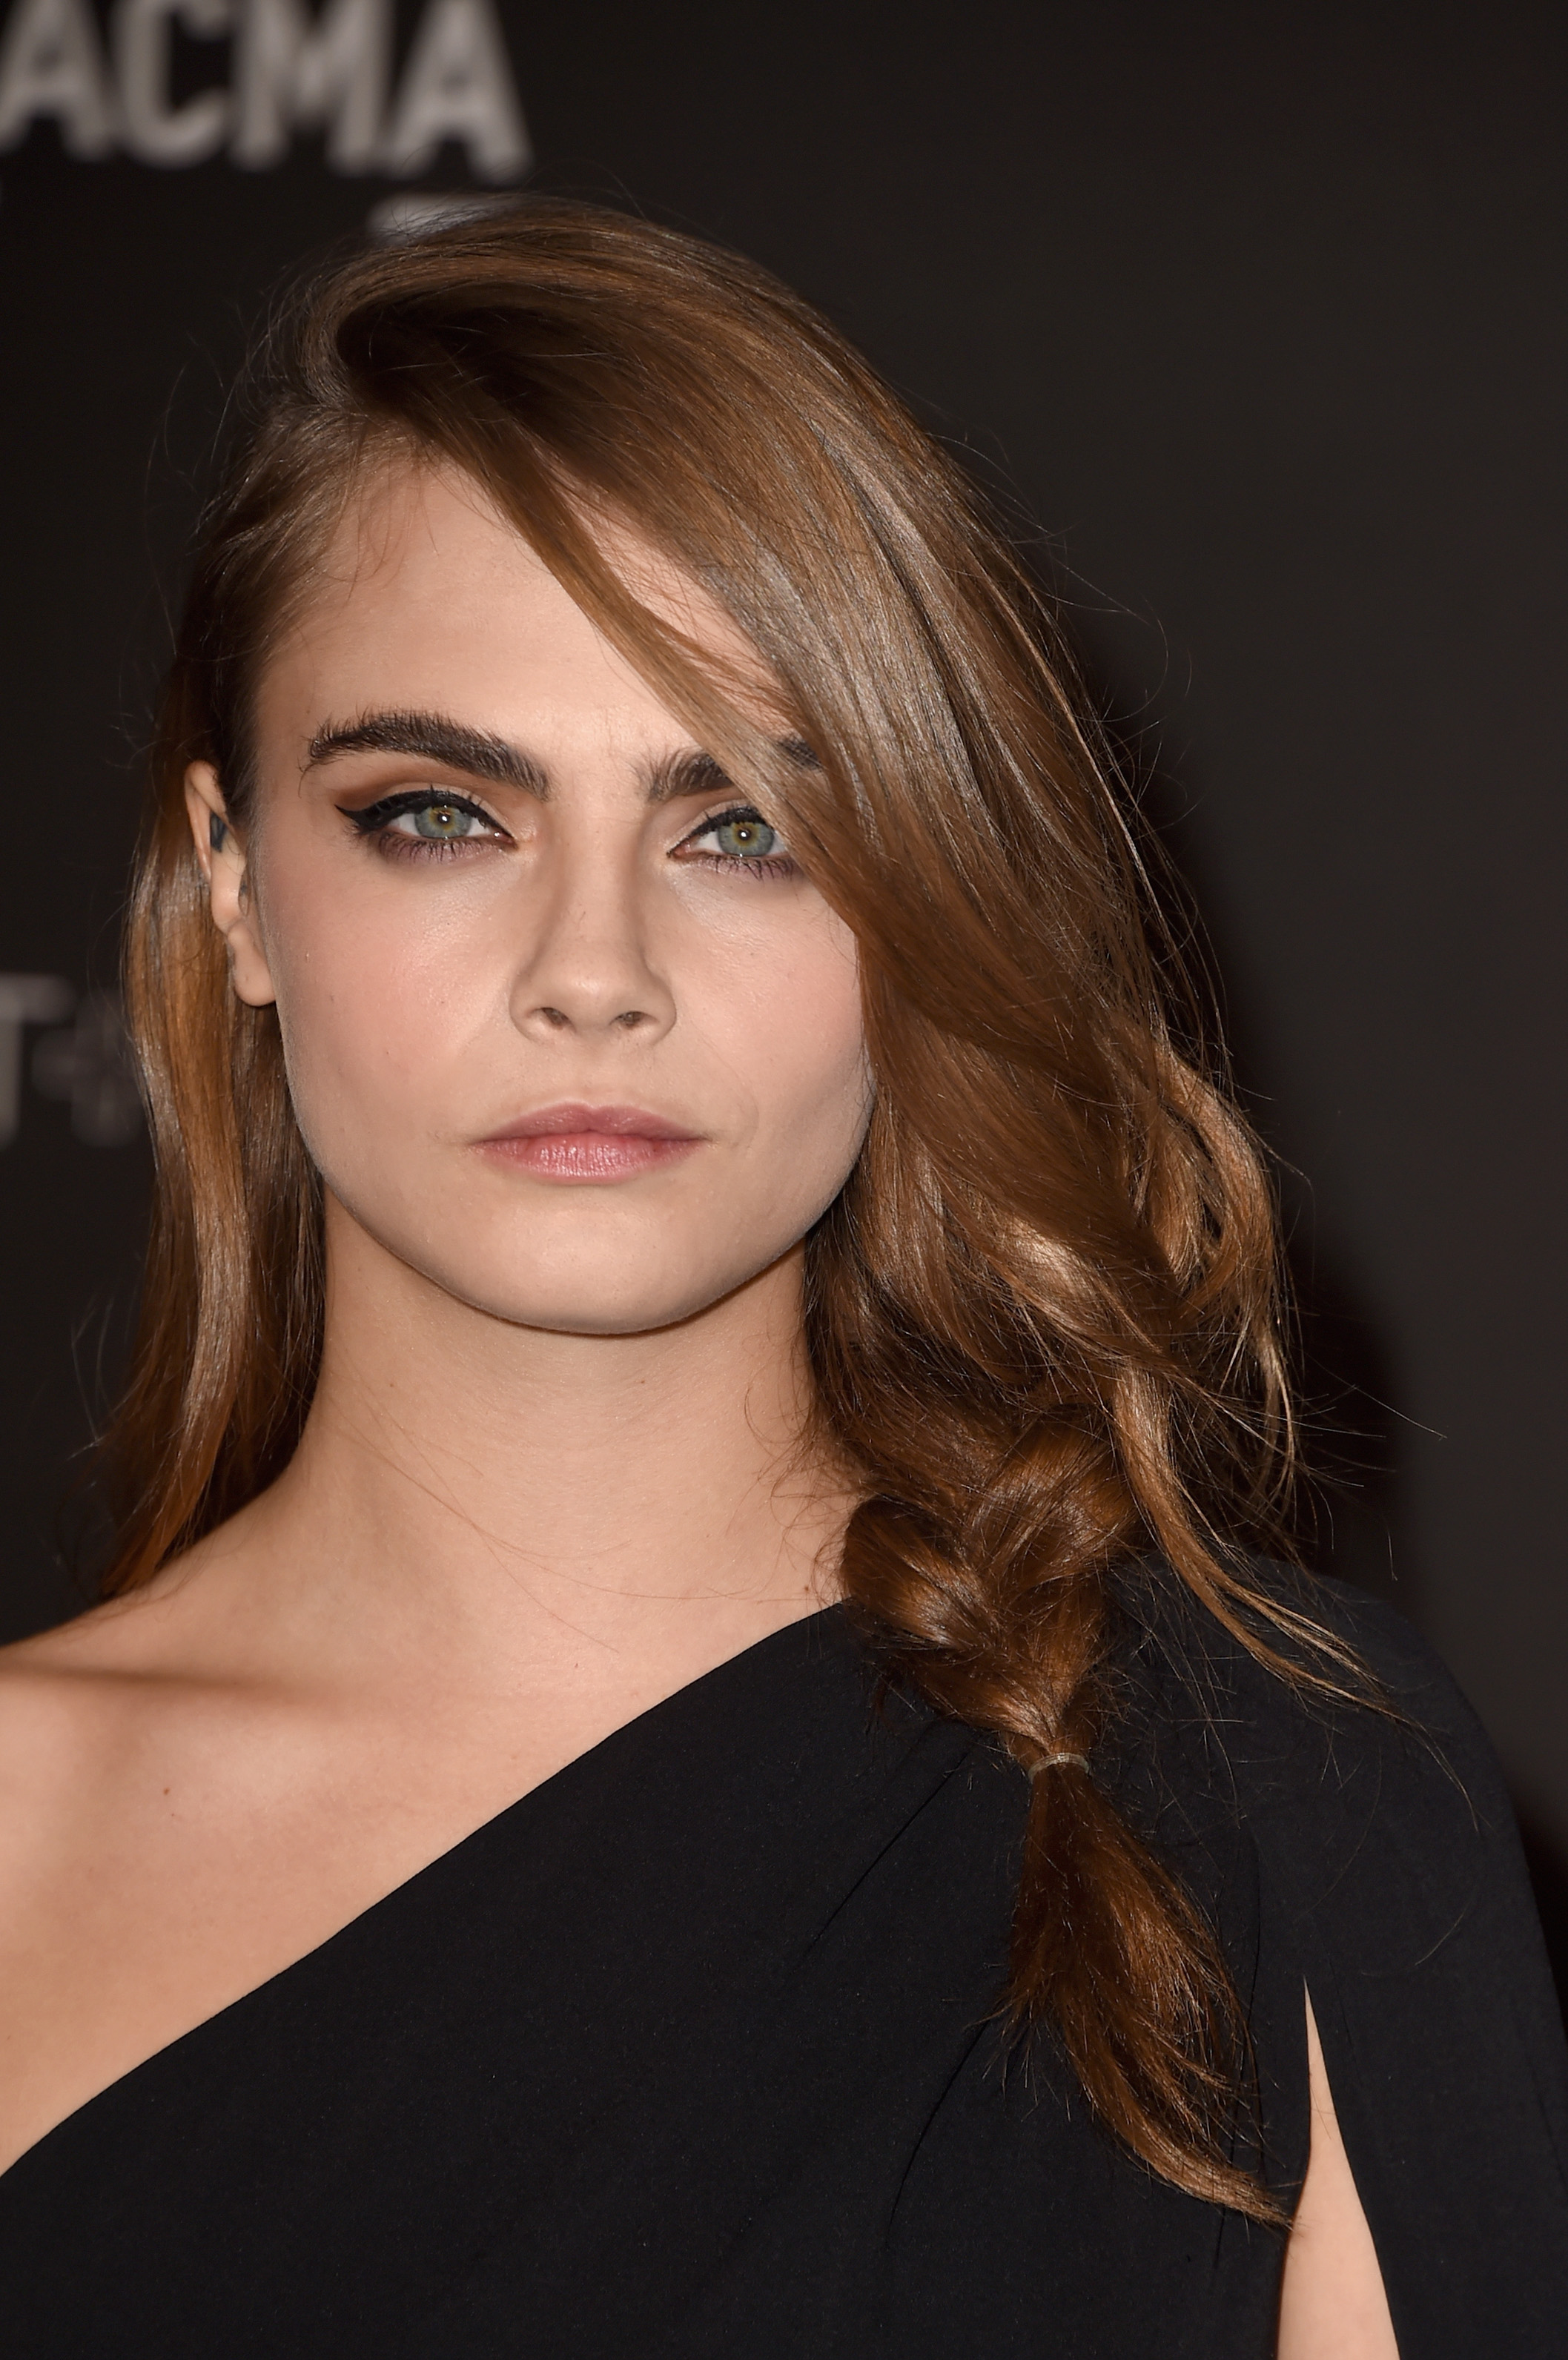 Cara Delevingne Dyes Her Hair Brown: See Pictures of the ...